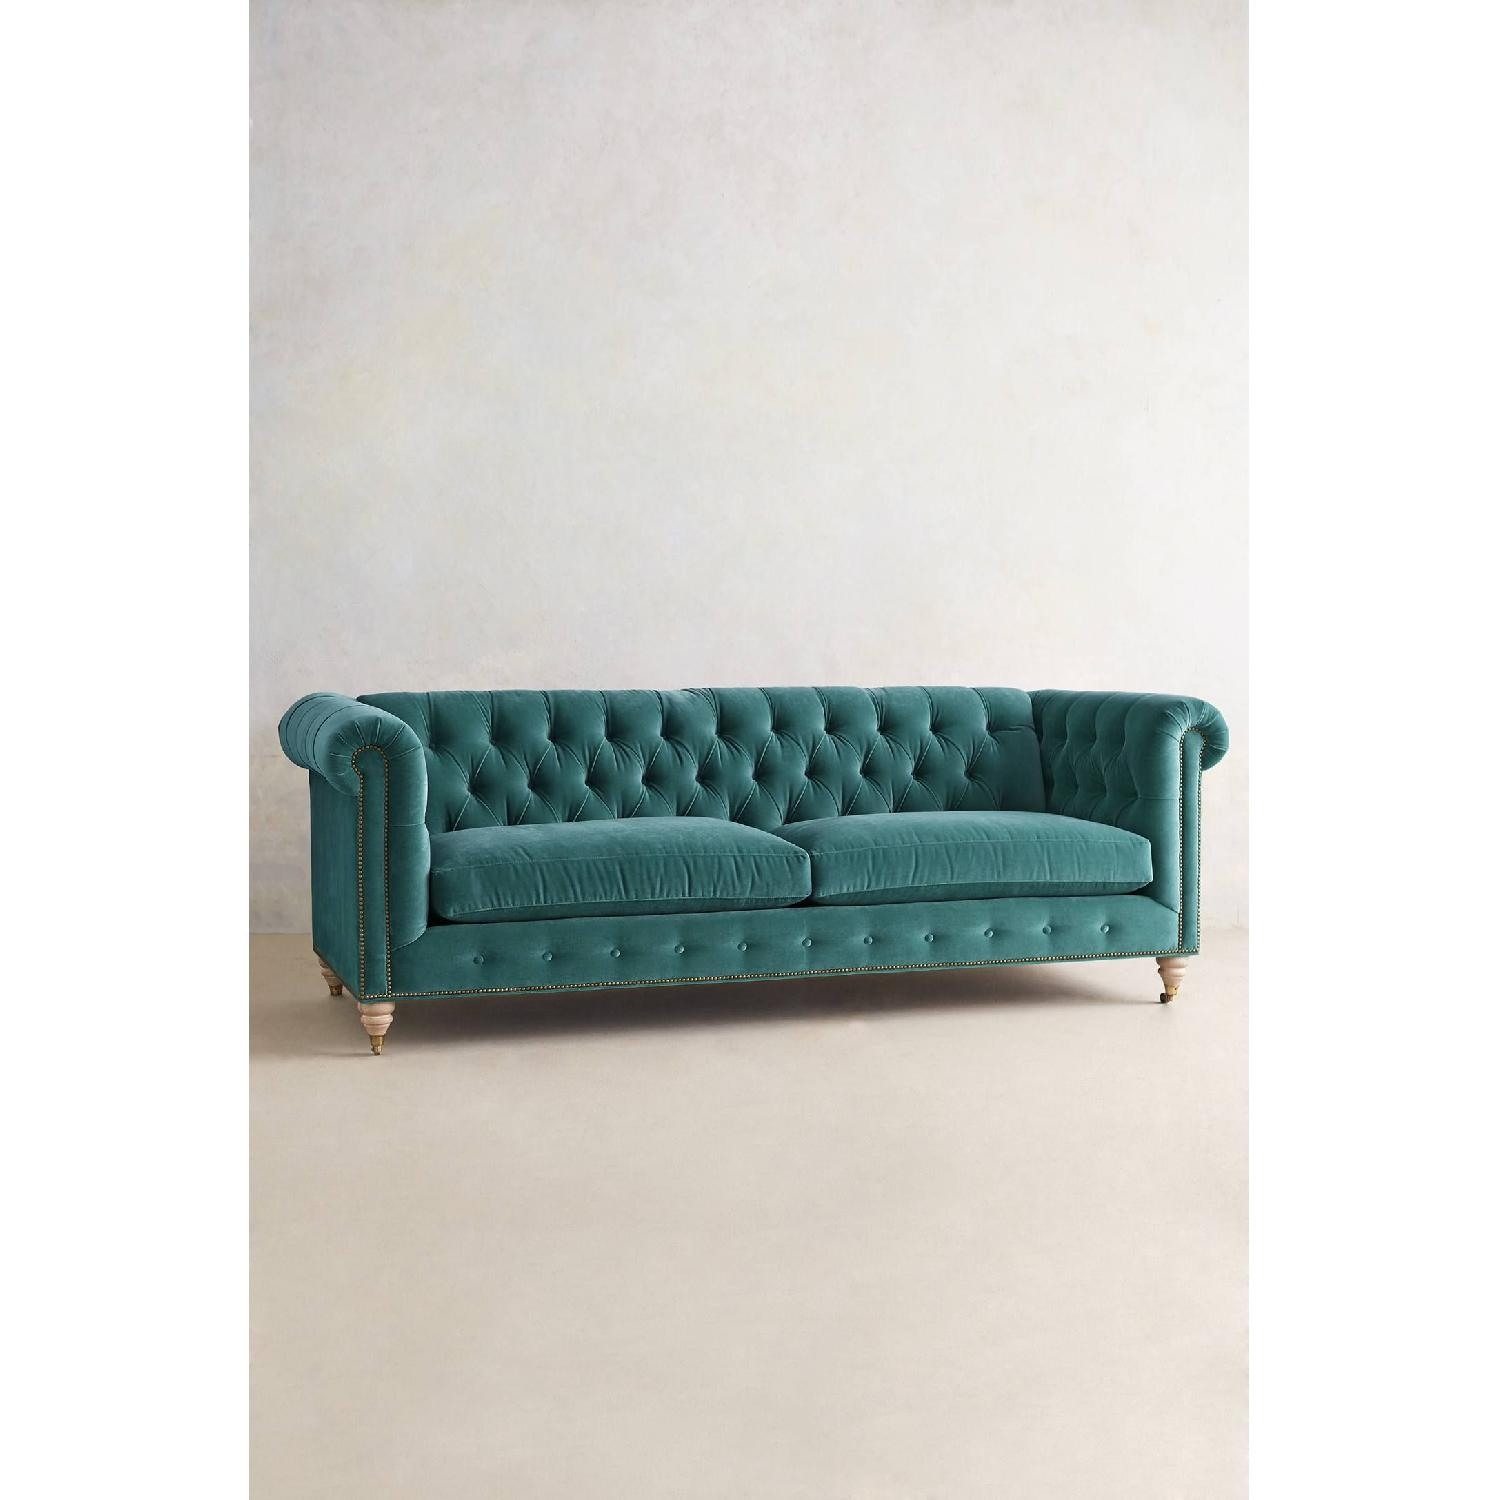 Genial Teal Tufted Sofa 2